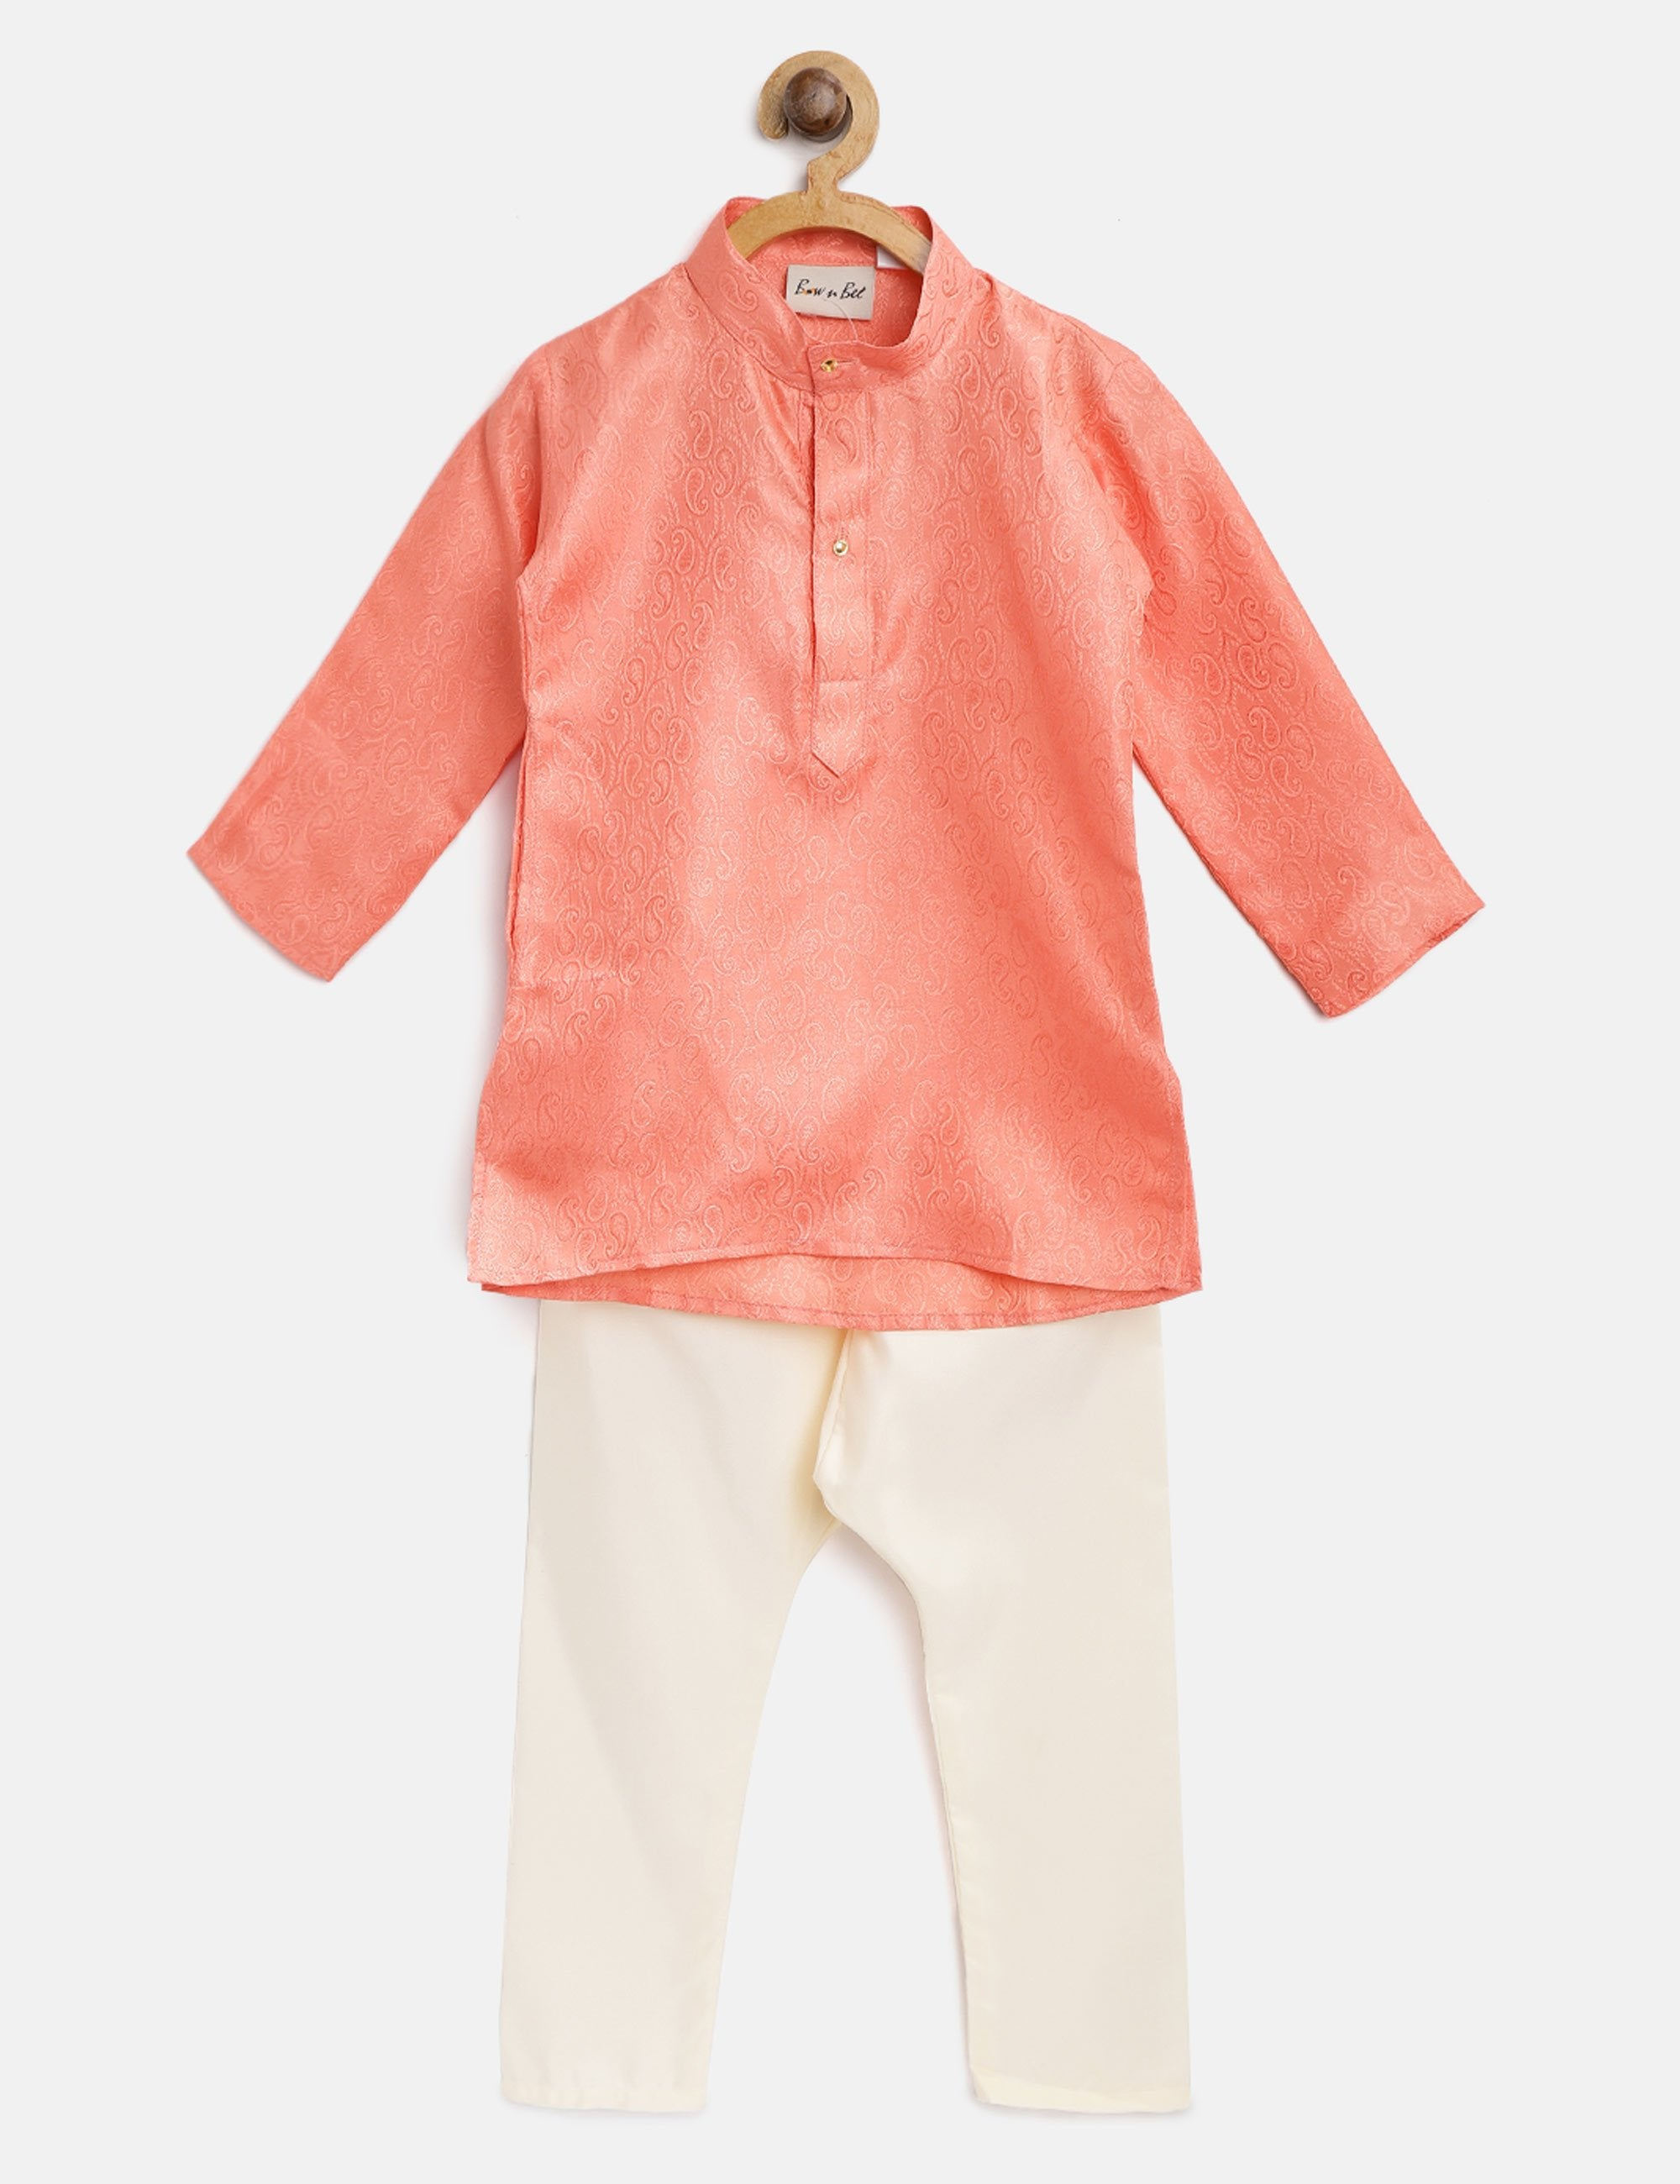 Ethnic Grace Kurta Pajama for Baby Boy- Peach